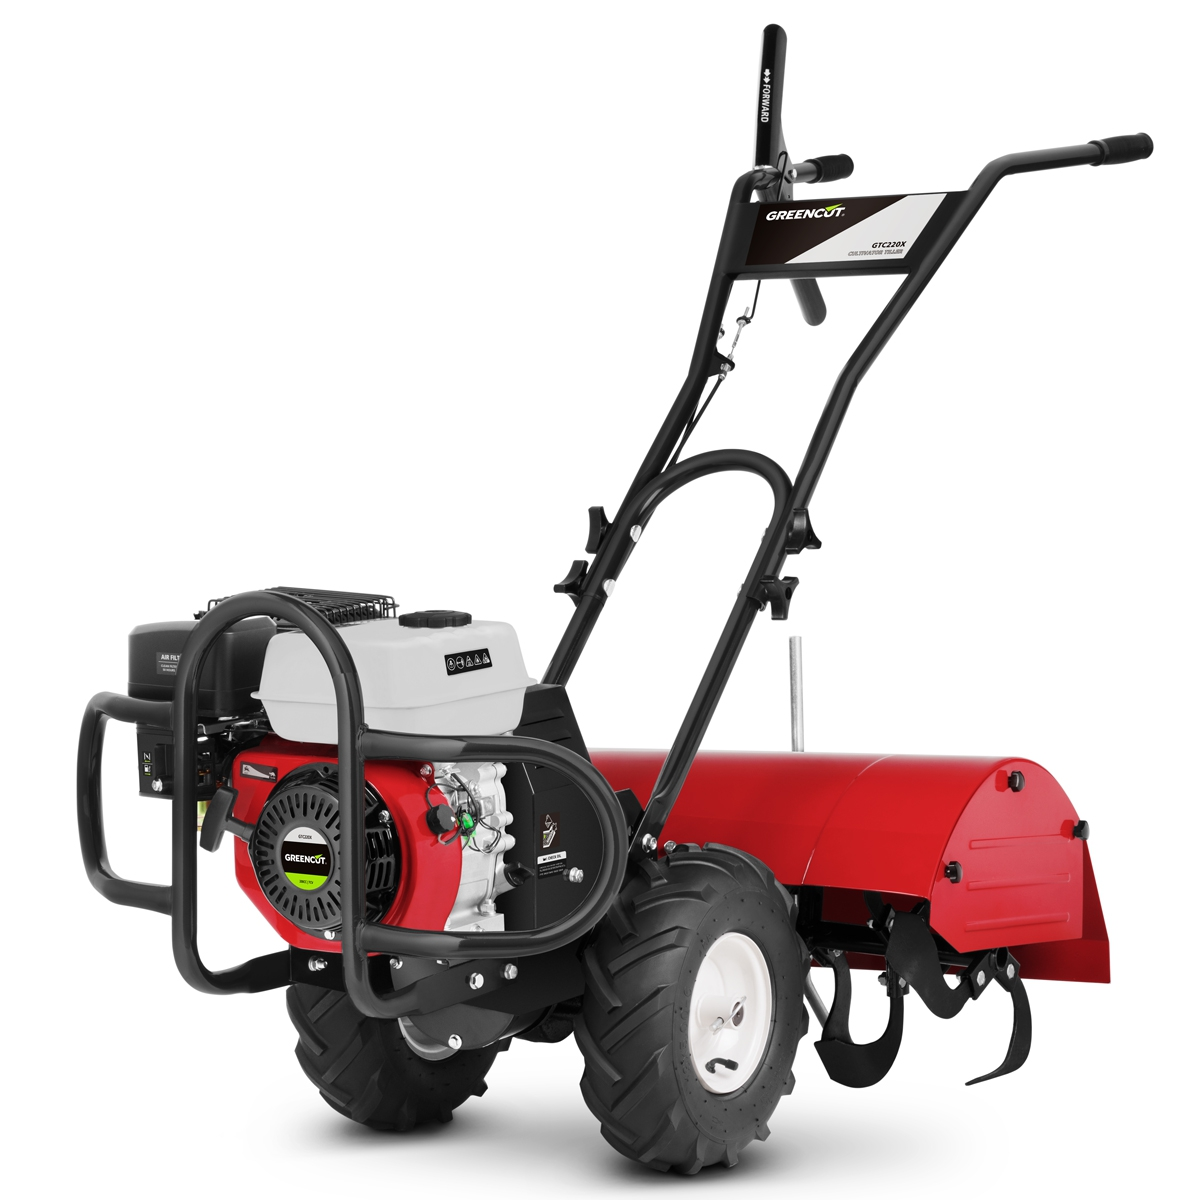 Rototiller Gasoline 7sv Working Width 70cm Powerful And Manageable-GREENCUT